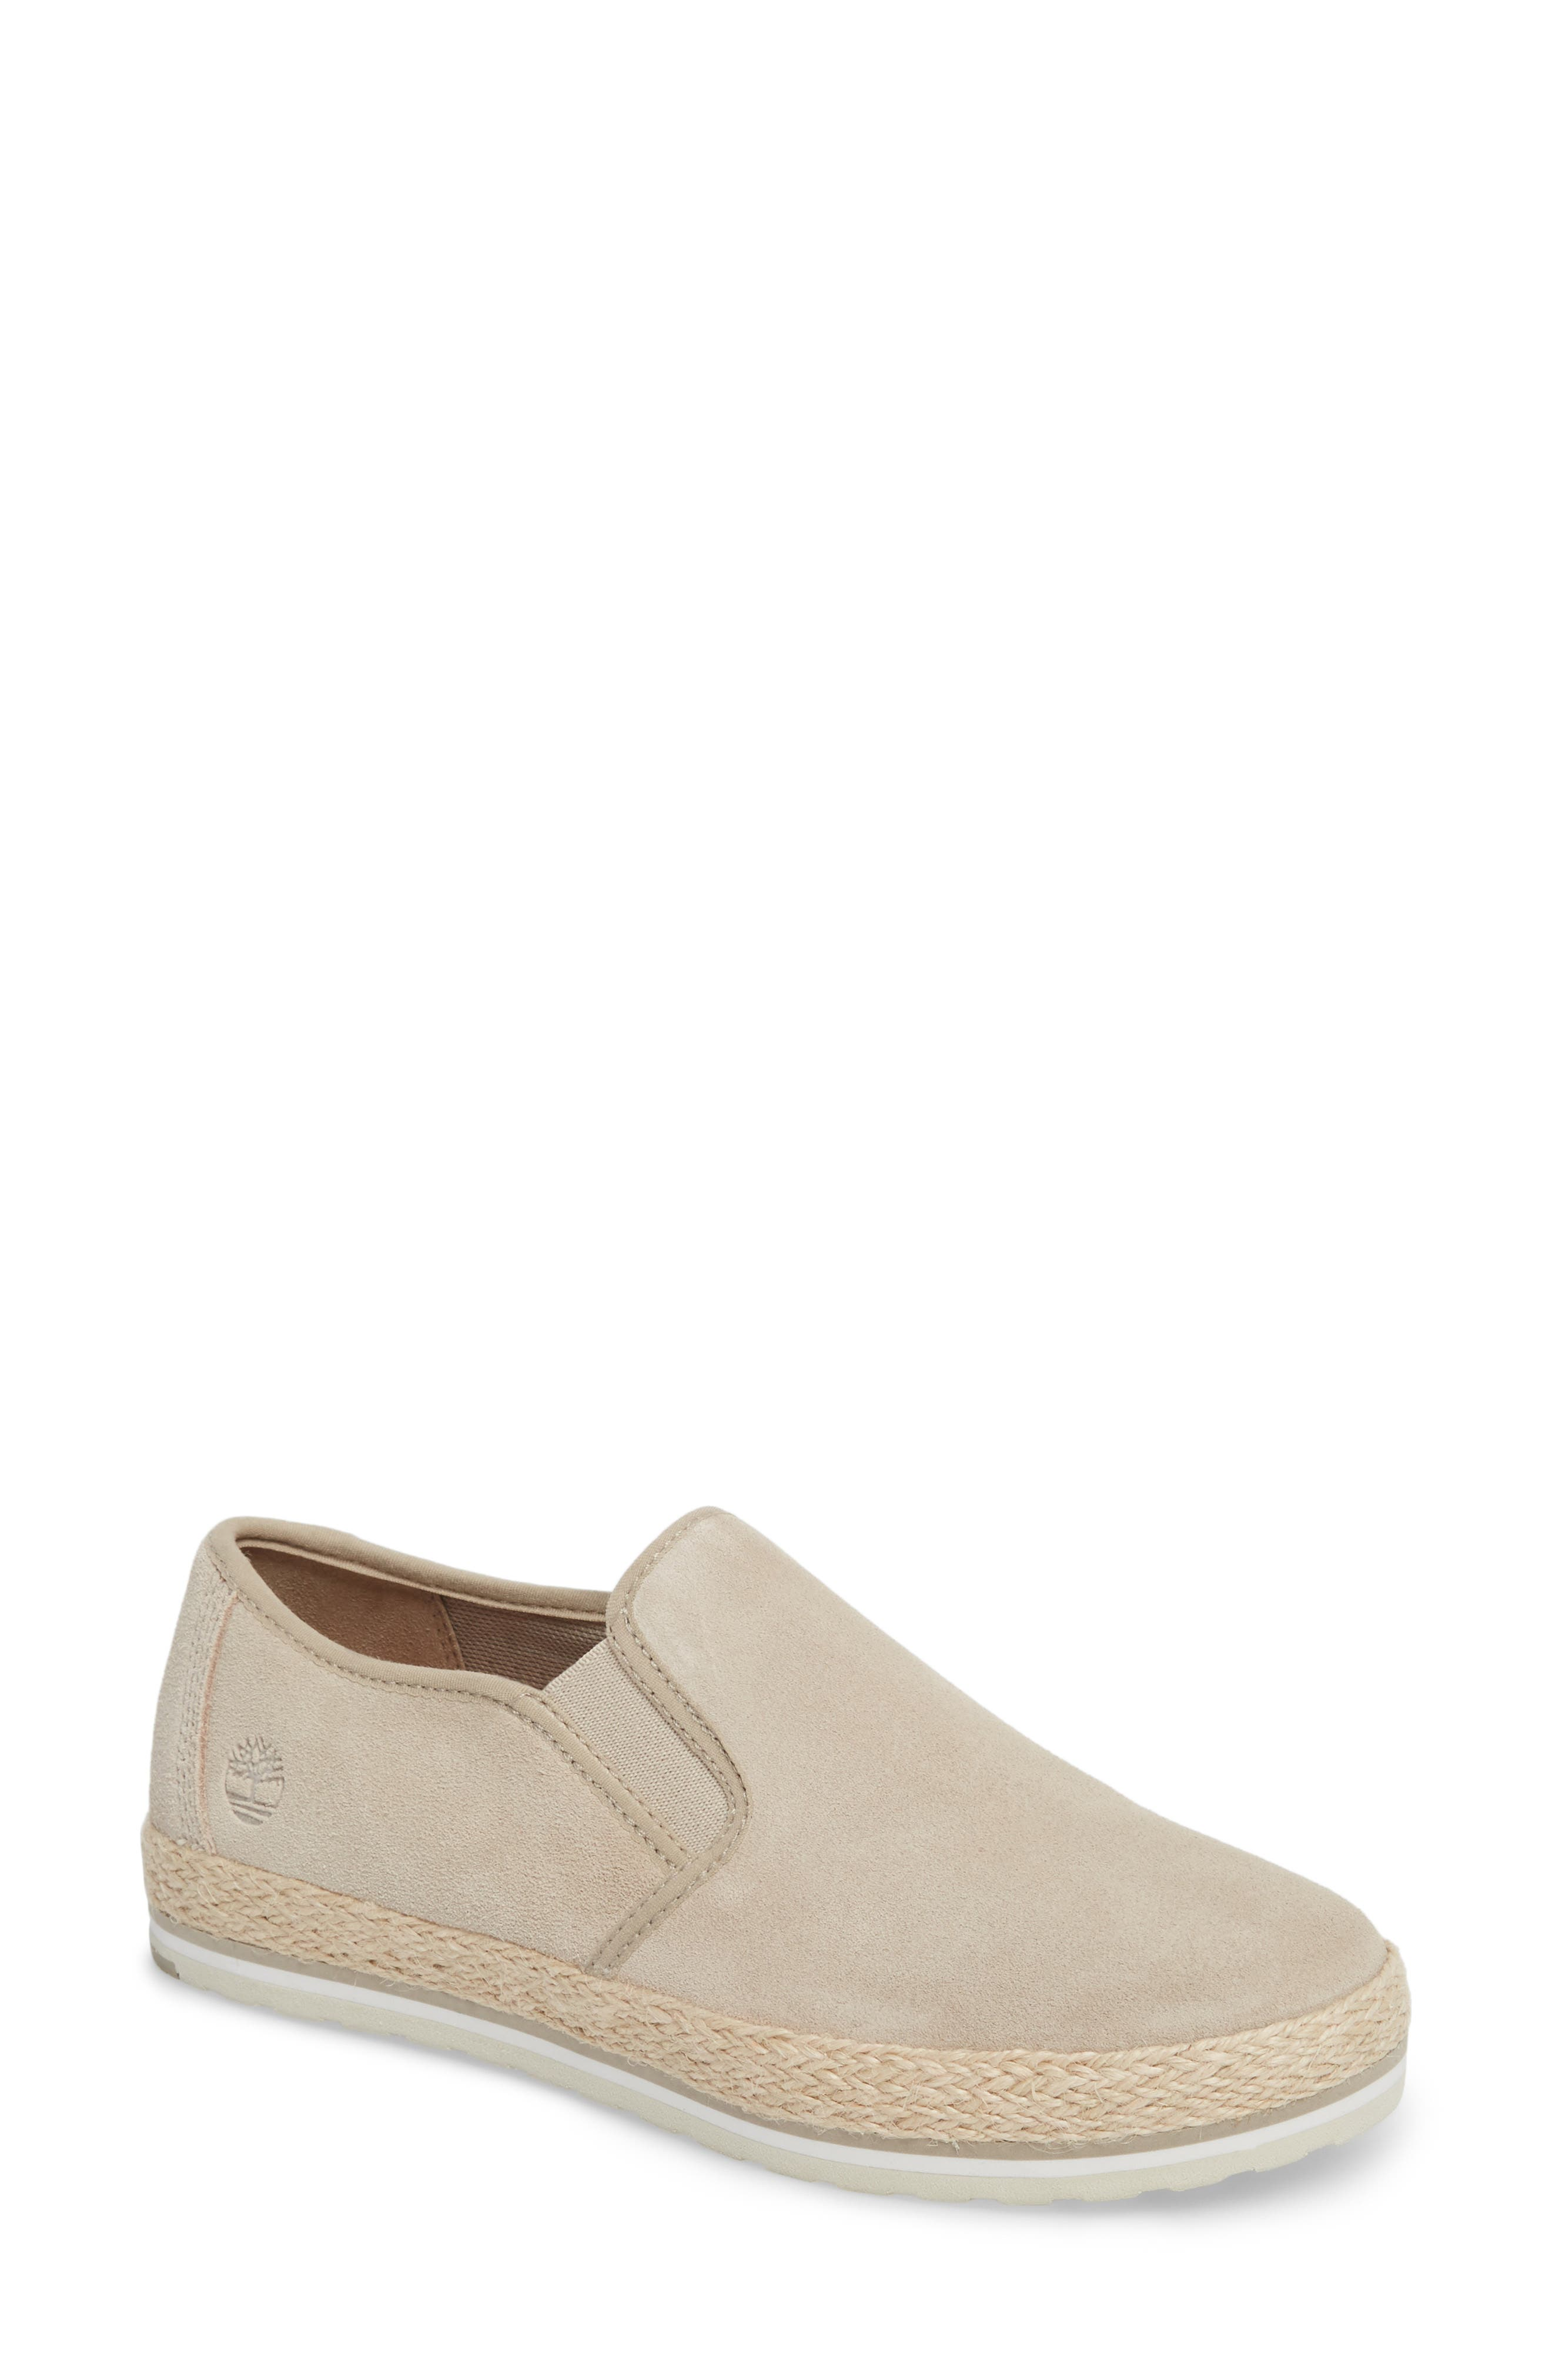 Eivissa Sea Slip-On Sneaker,                         Main,                         color, LIGHT BEIGE LEATHER